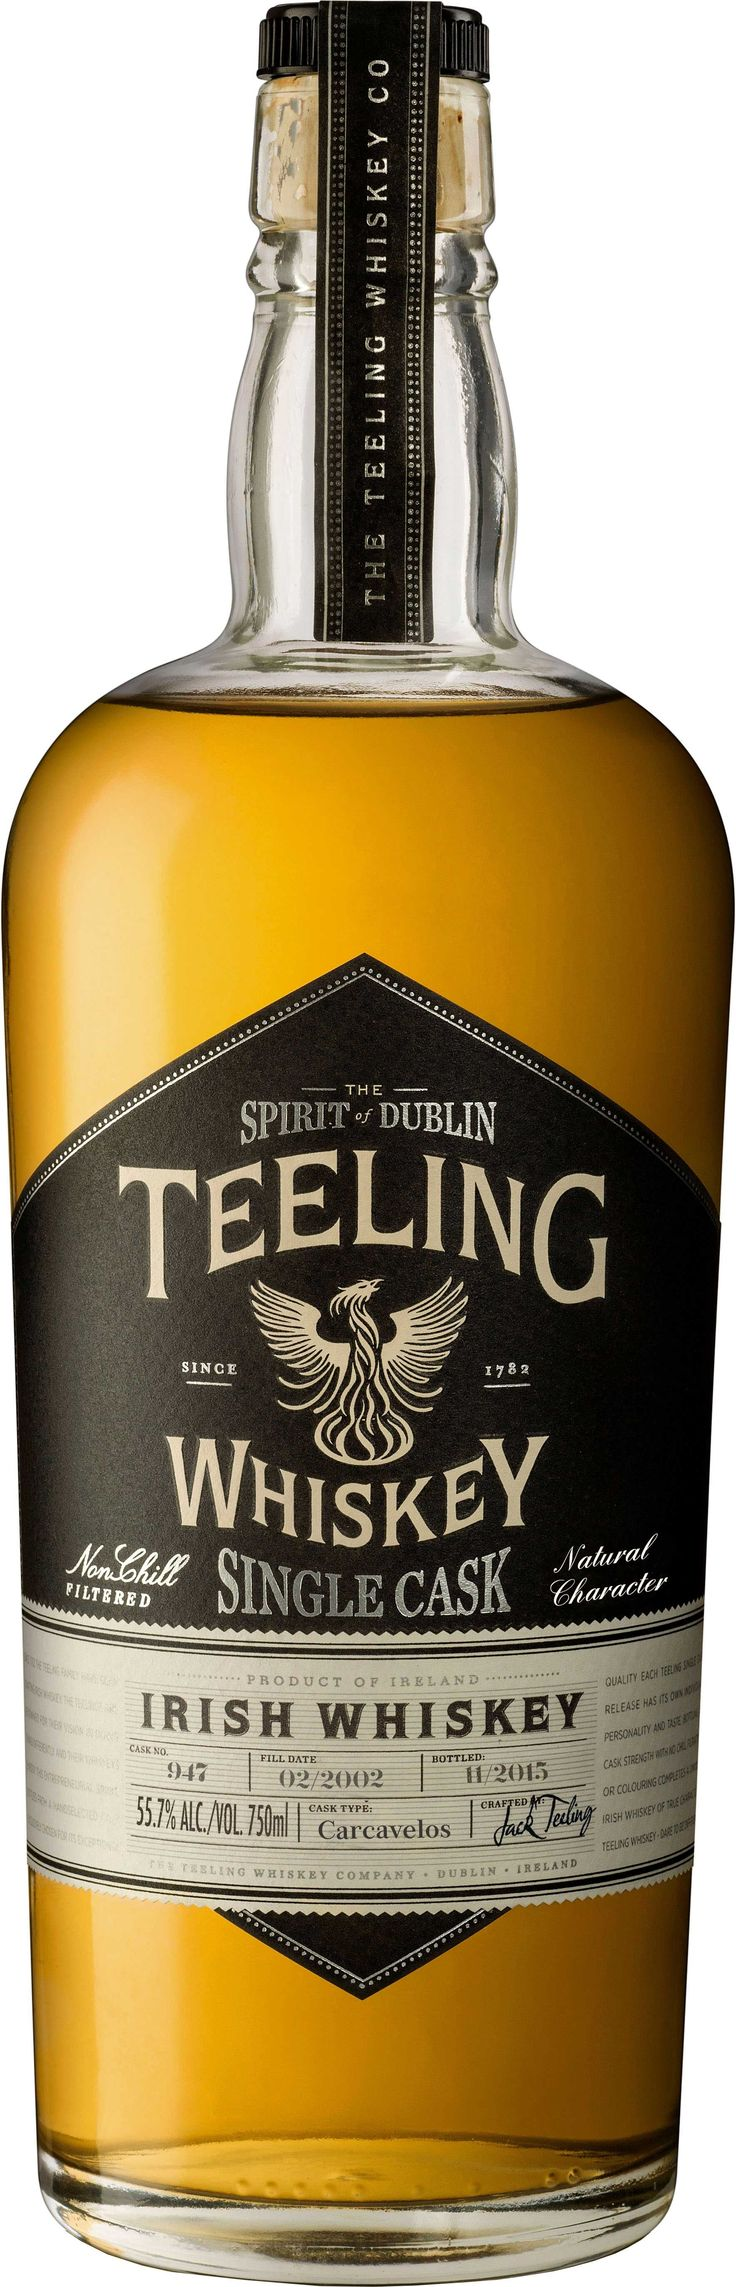 Teeling Carcavelos Barrel Aged Single Cask Irish Whiskey | @Caskers